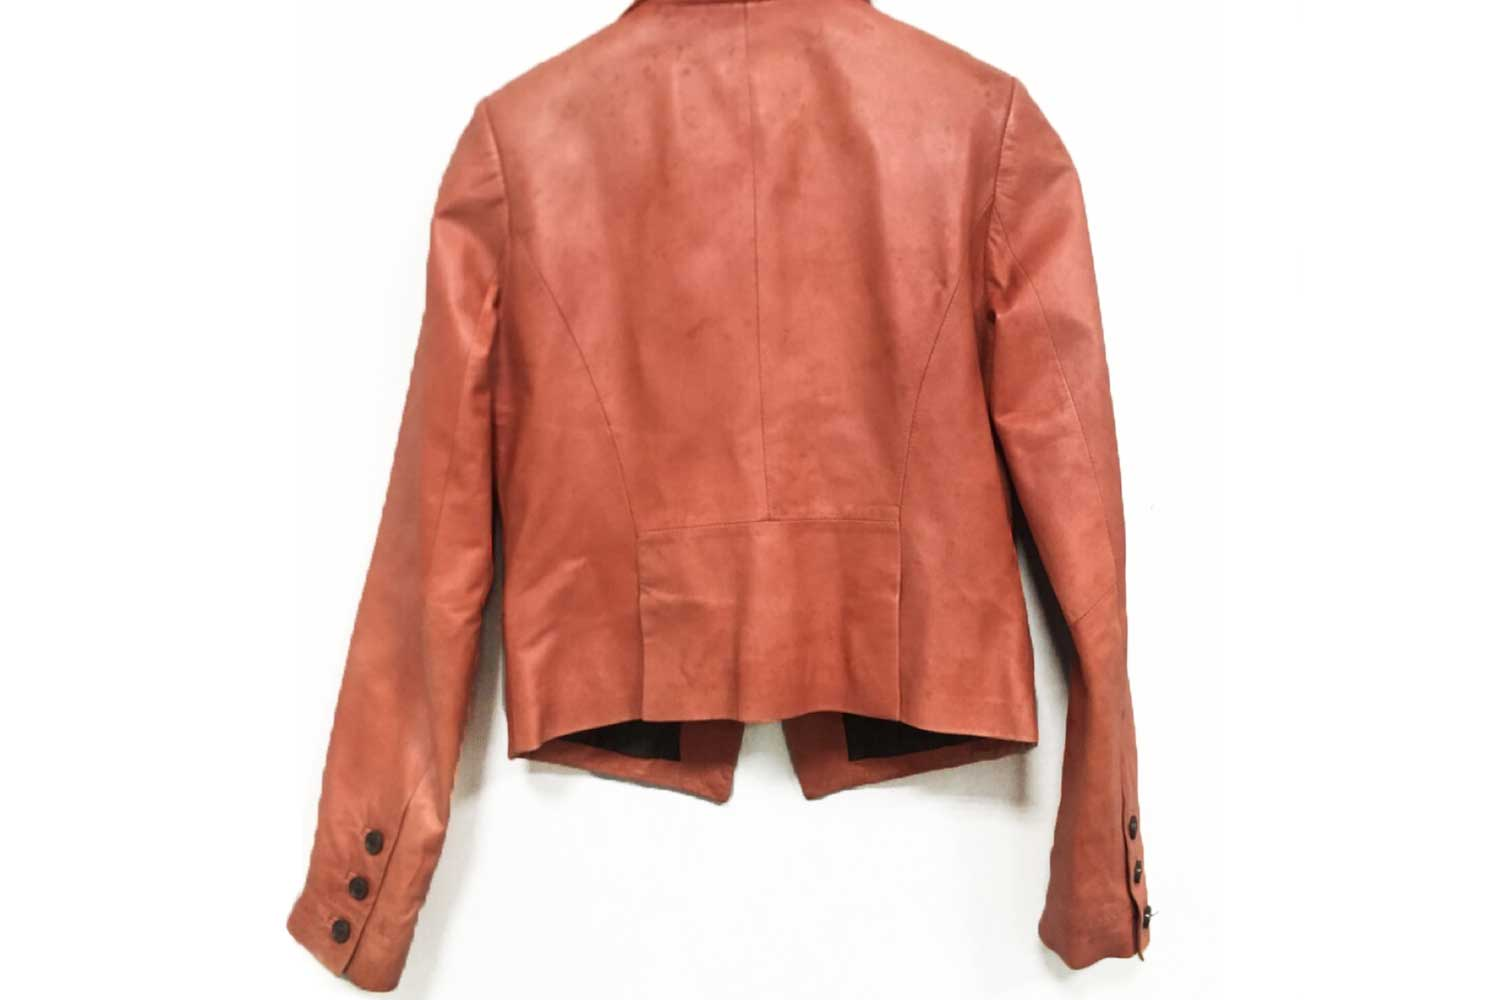 https://leather-pro.com/wp-content/uploads/2018/05/news_clothing_before_1500.jpg